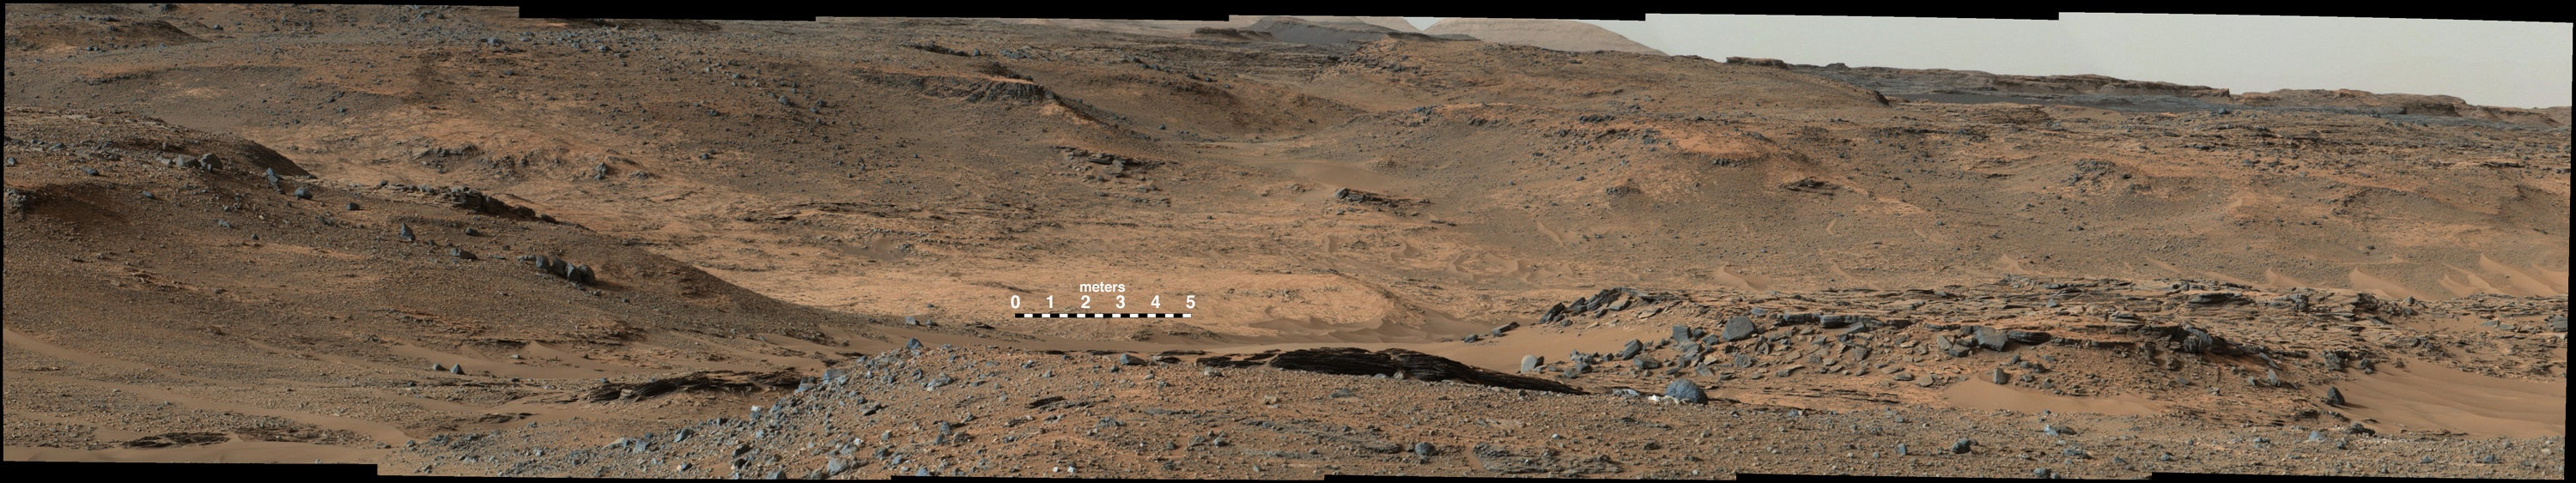 At last, Mars Curiosity finally reaches its destination